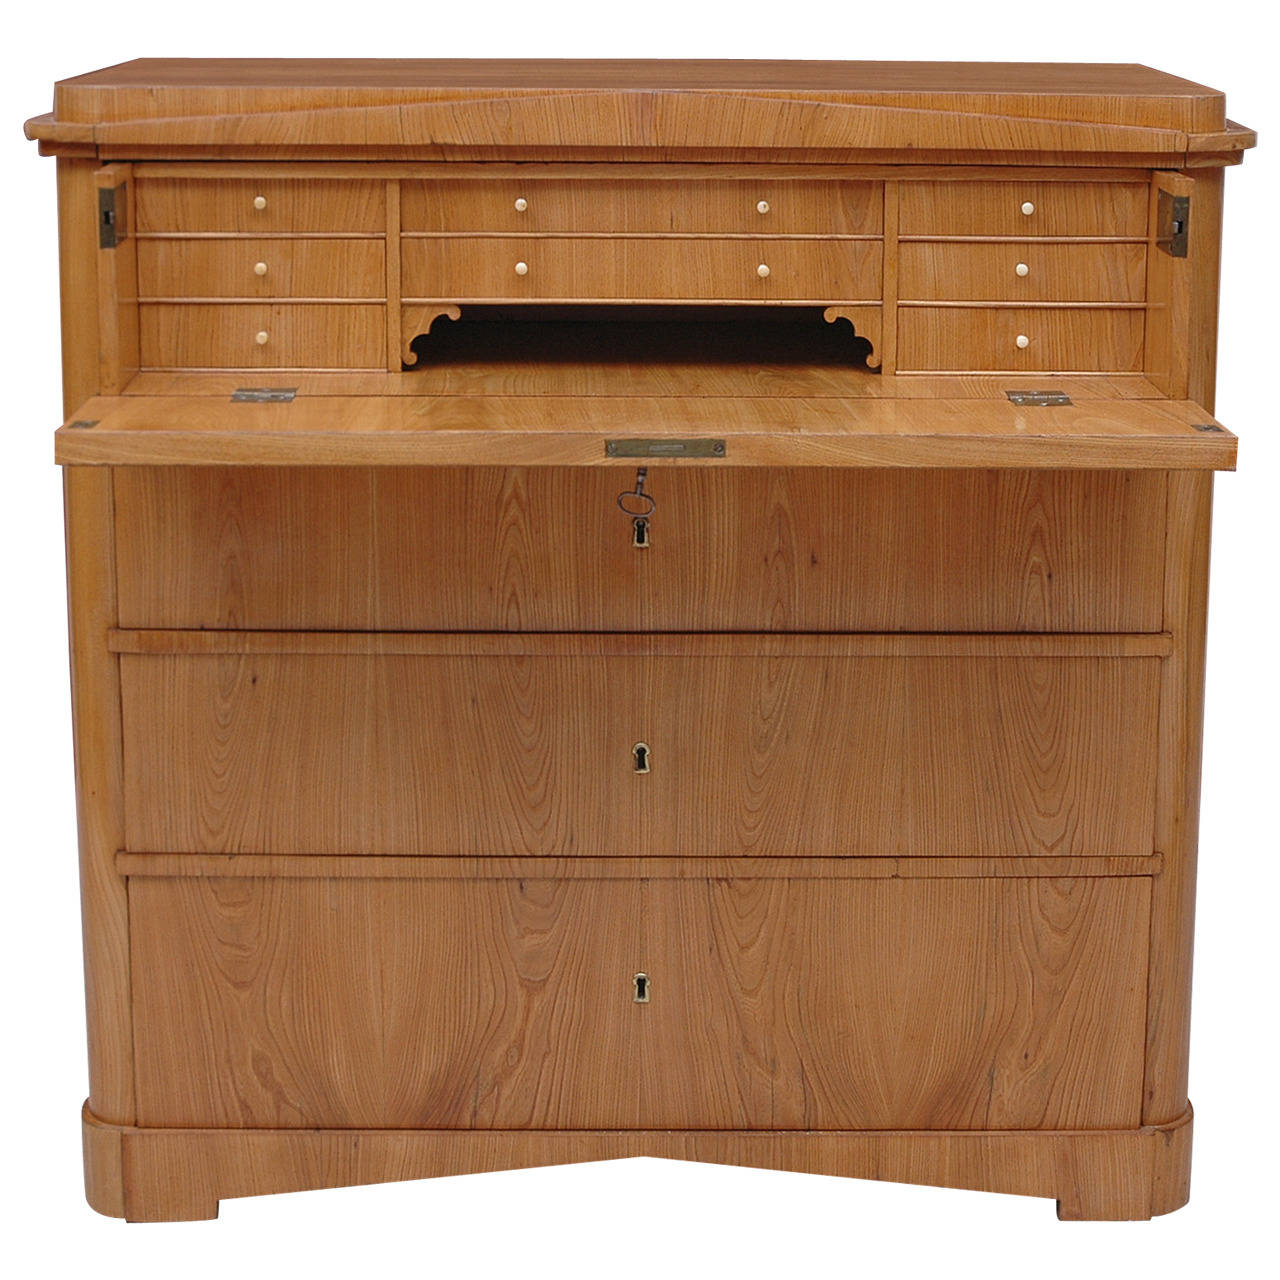 Biedermeier Ash Chest of Drawers with Fold-Down Drawer-Front Secretary - Biedermeier Ash Chest Of Drawers With Fold-Down Drawer-Front